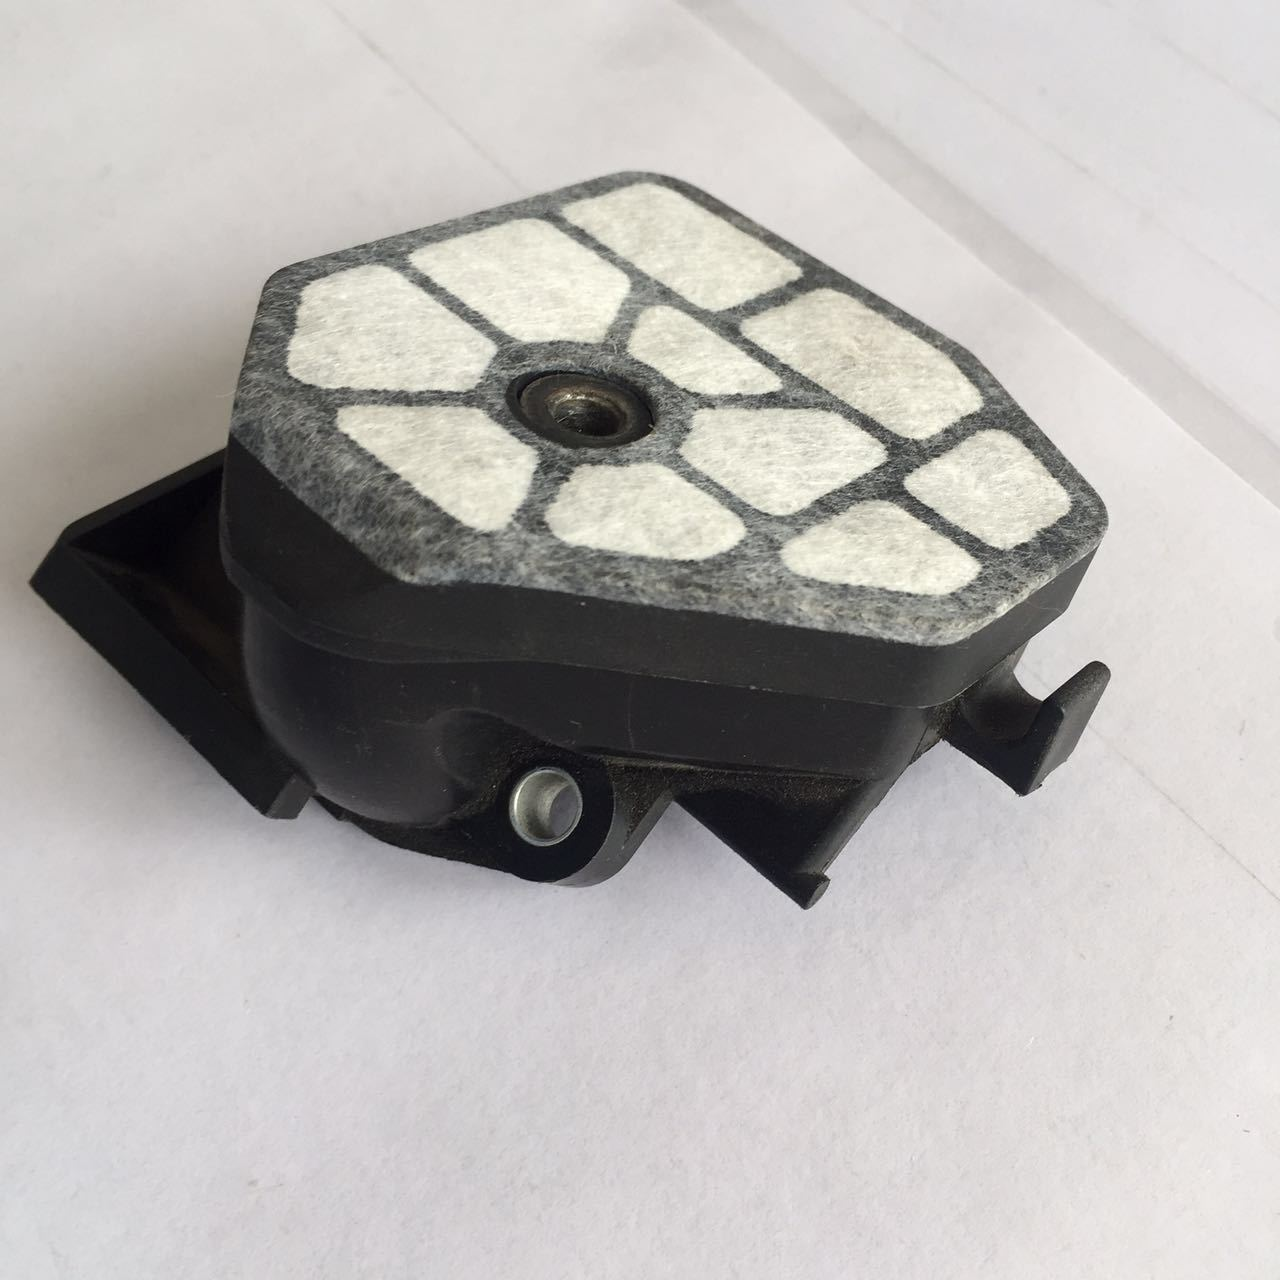 Cleaning Air Filter Assembly For PARTNER Chainsaw P350S Removes Small Particles